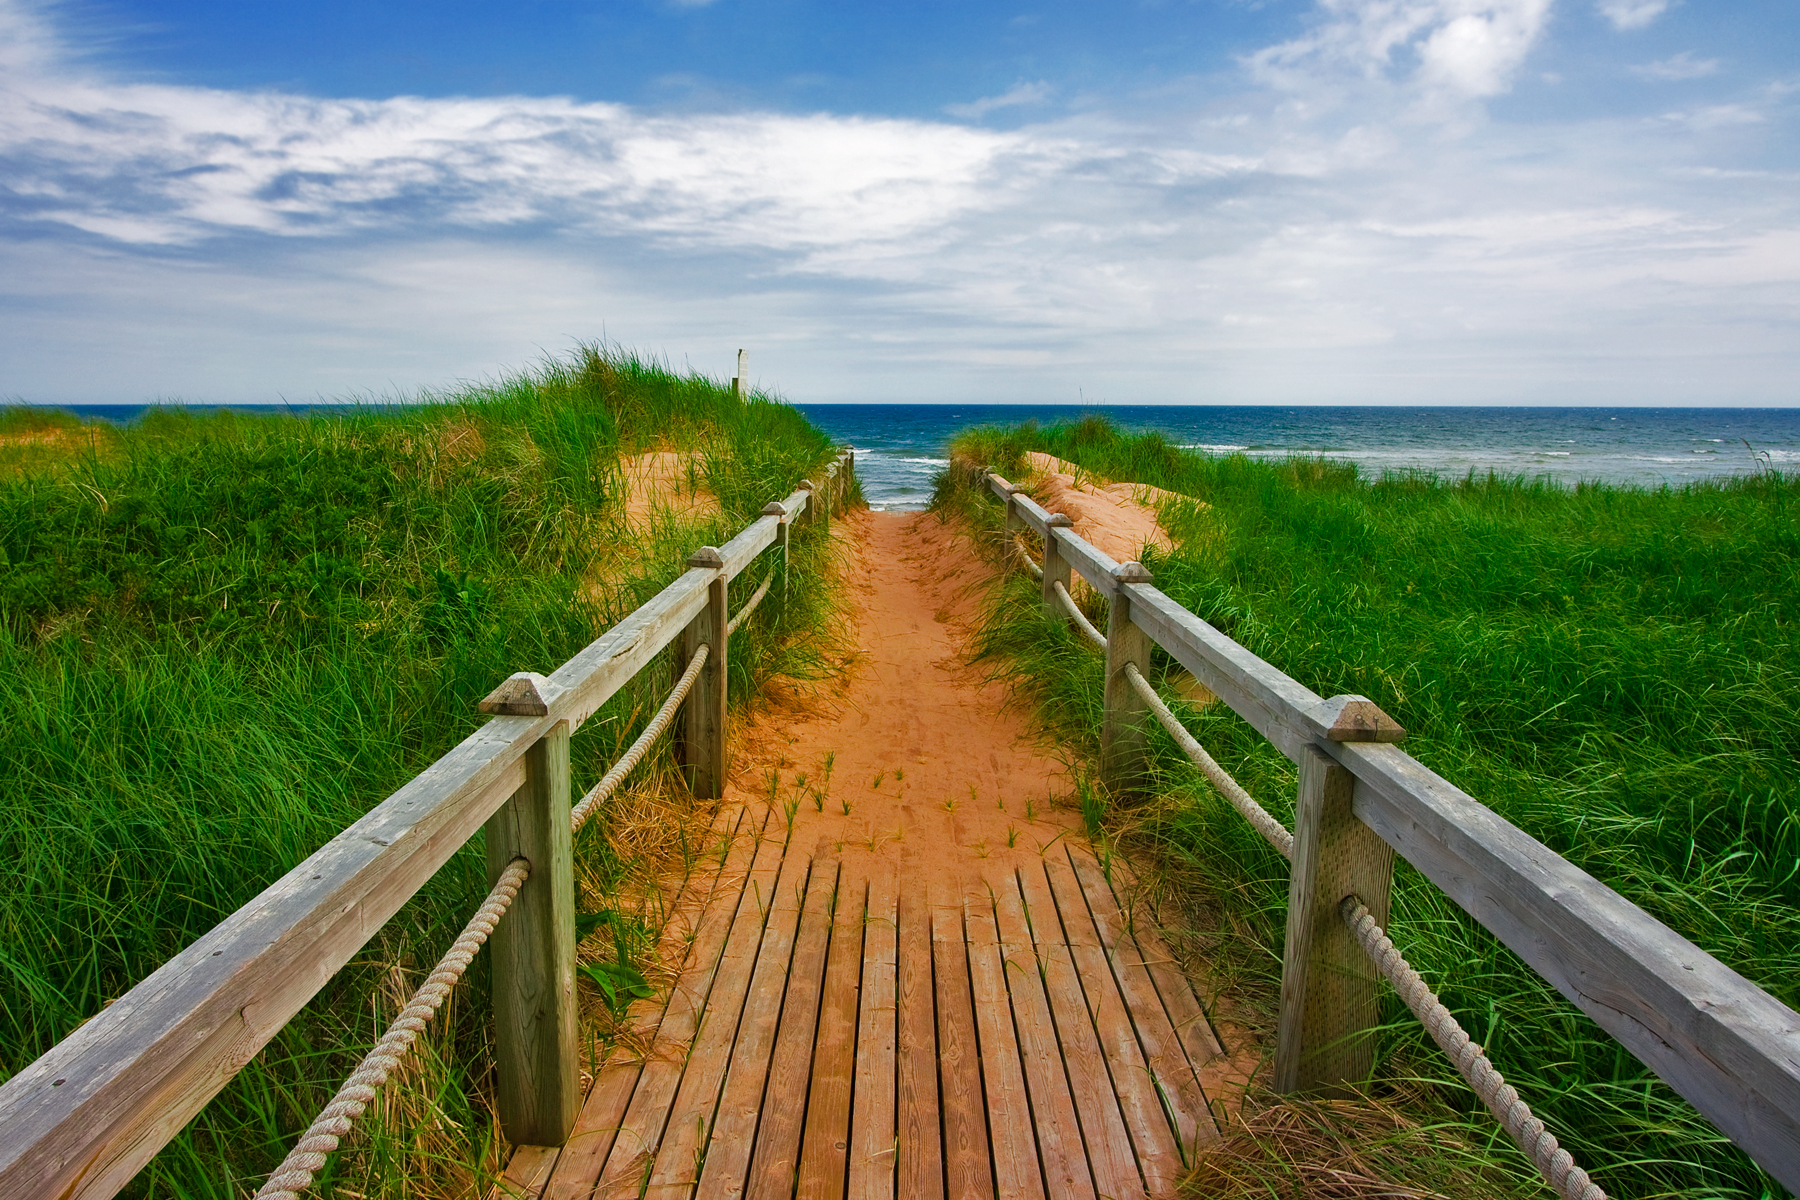 PEI Beach Boardwalk, Angle, Prince, Resource, Sand, HQ Photo